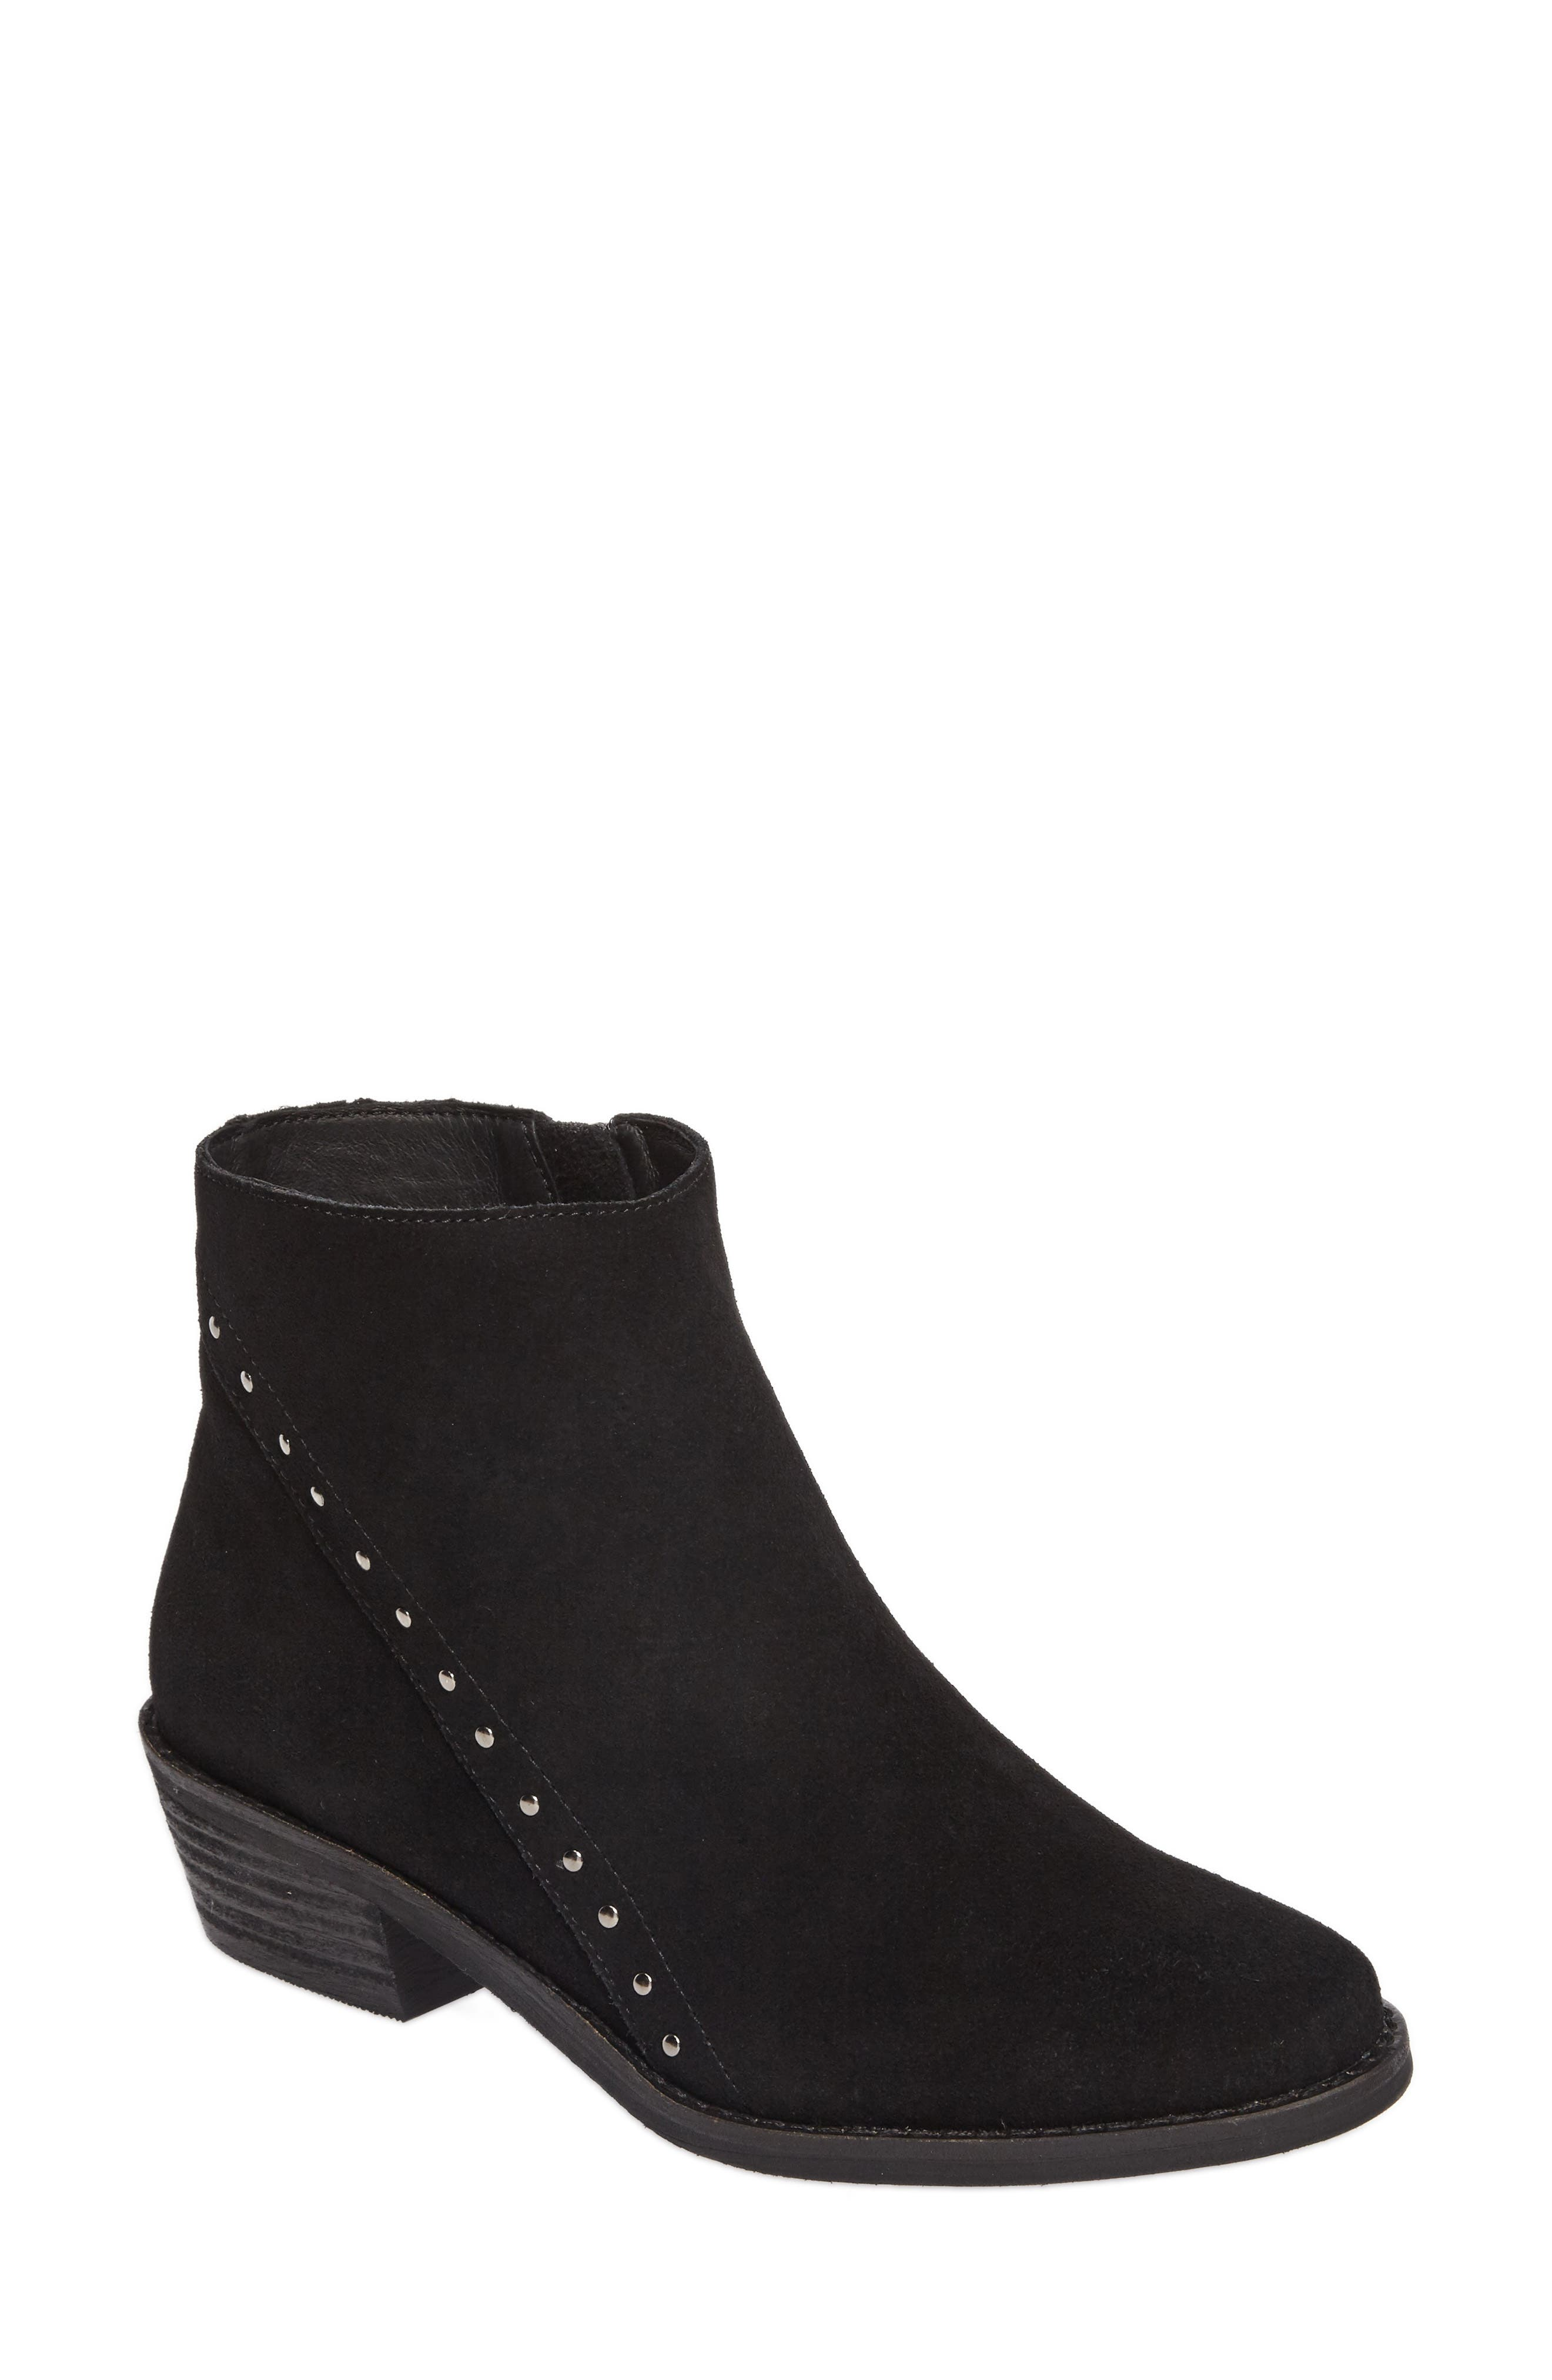 Irven Stud Bootie,                         Main,                         color, Black Suede